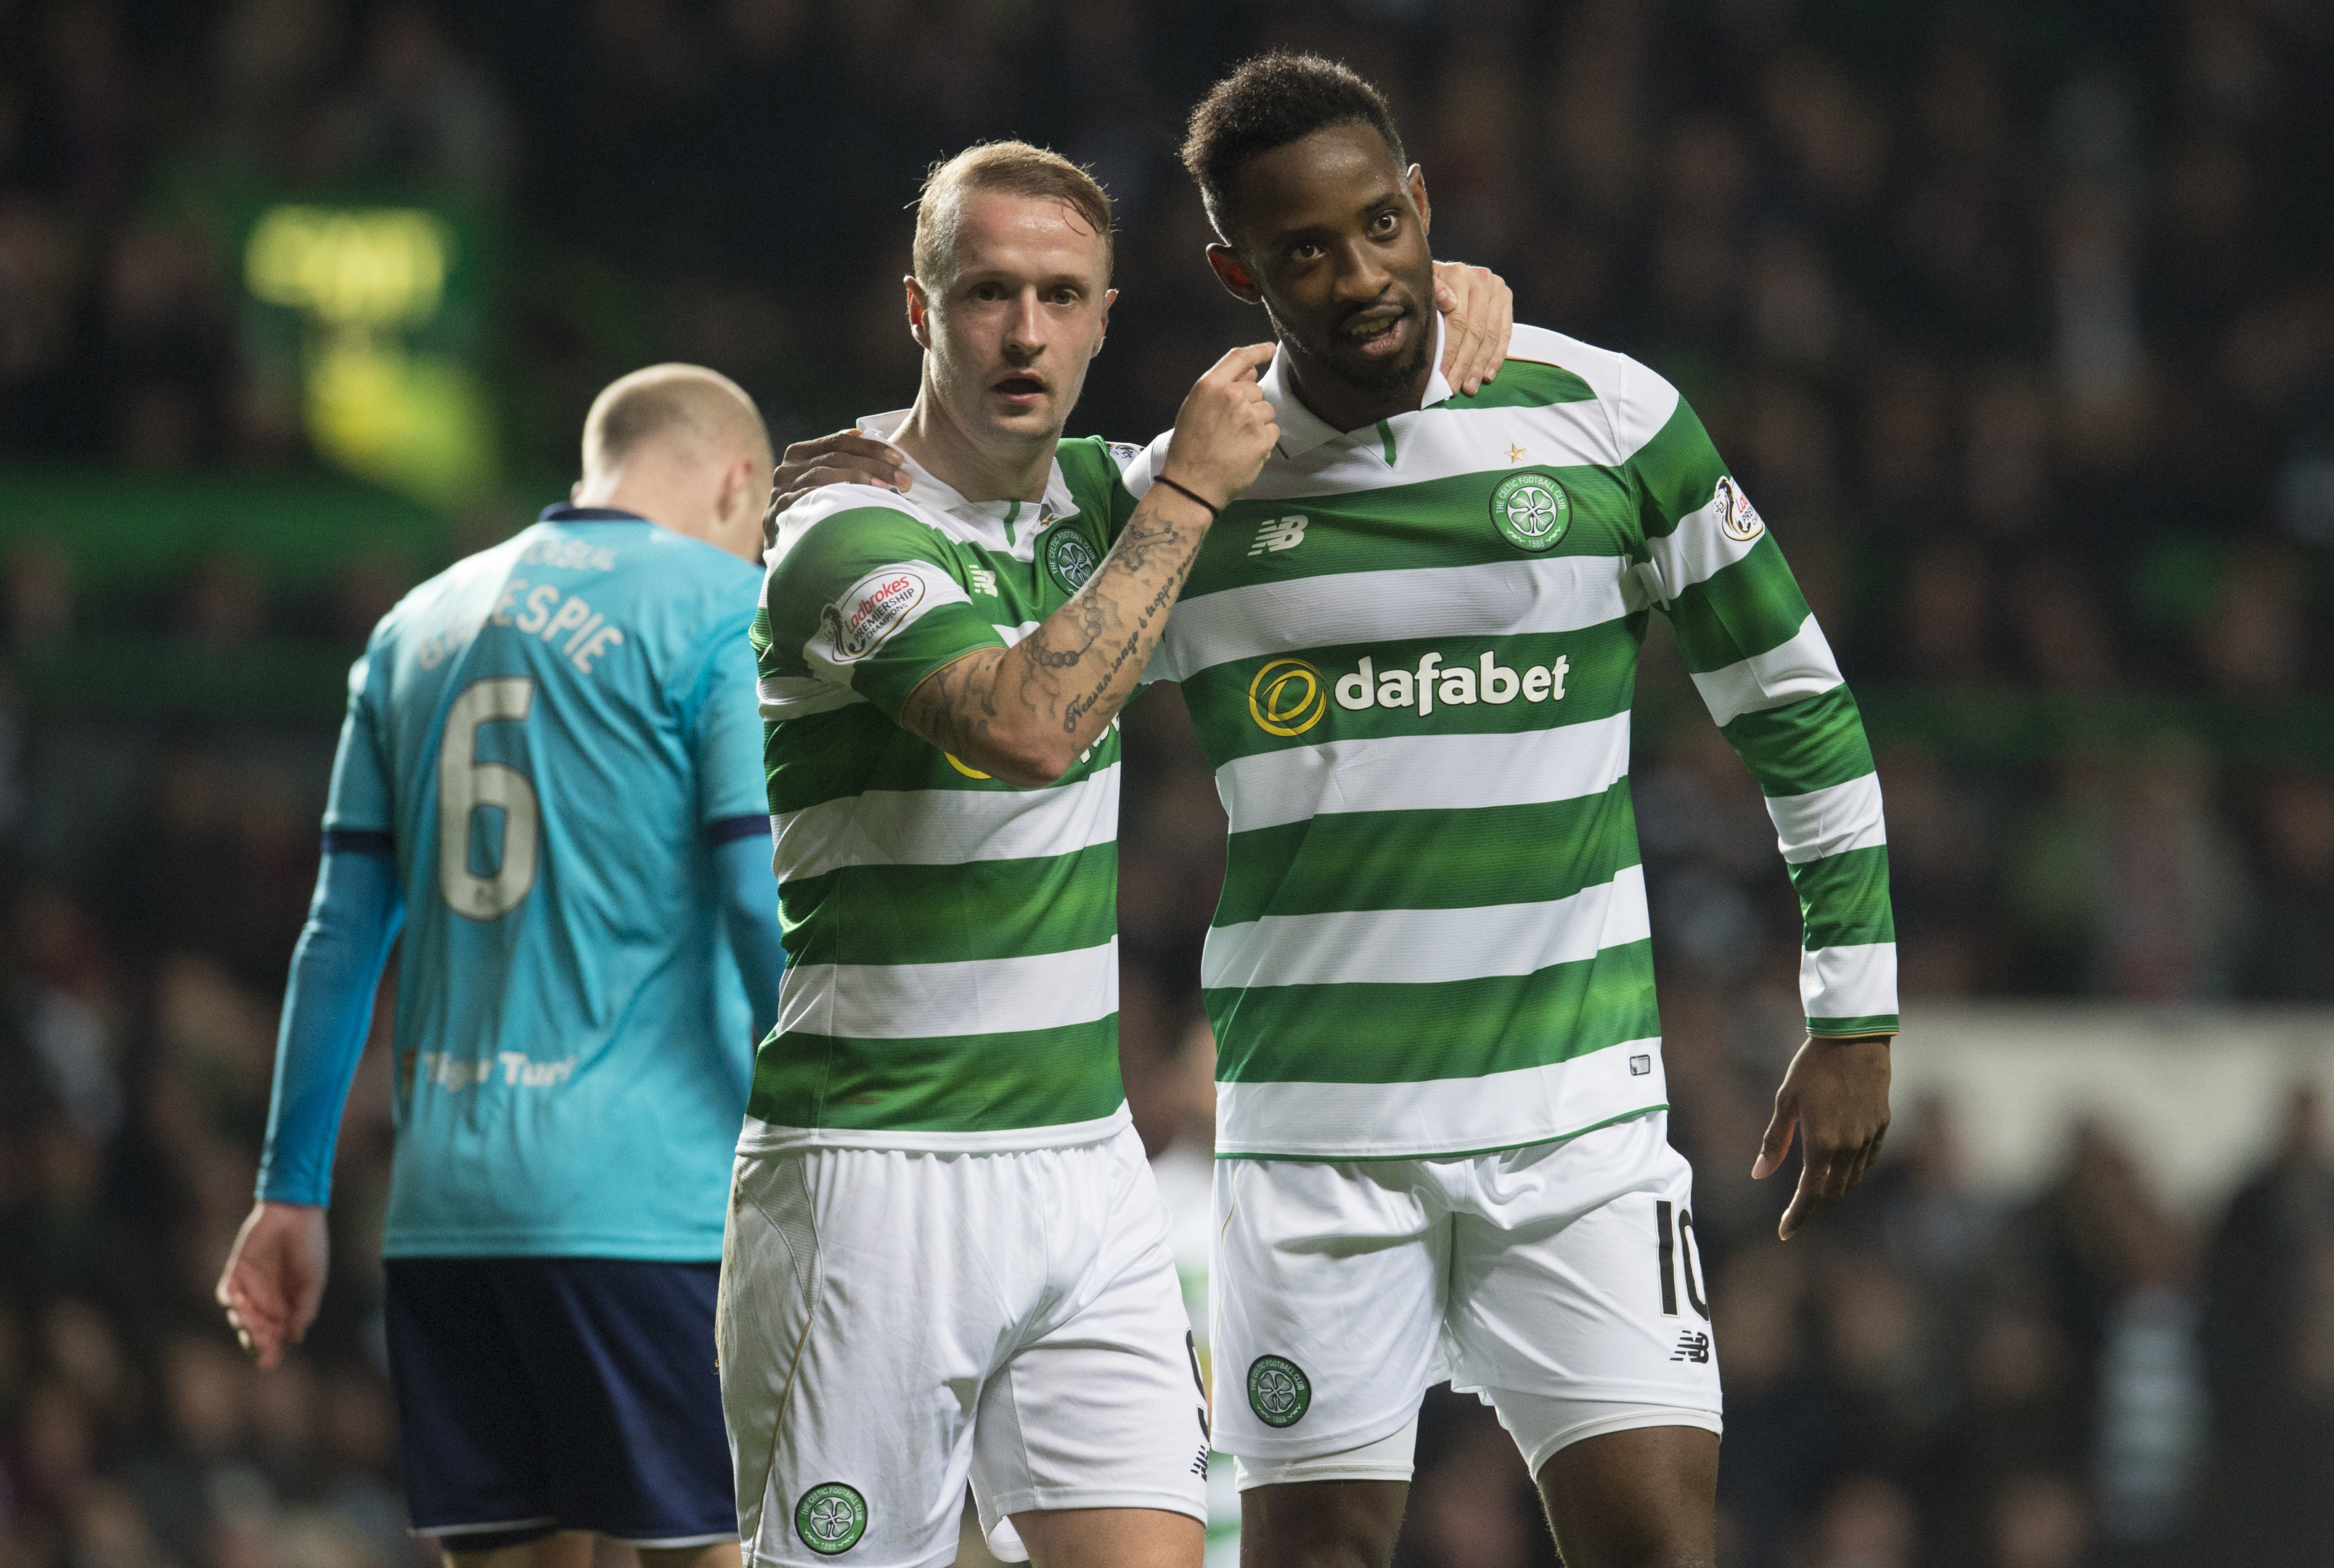 Celtic's Leigh Griffiths celebrates his goal against Hamilton with team-mate Moussa Dembele.